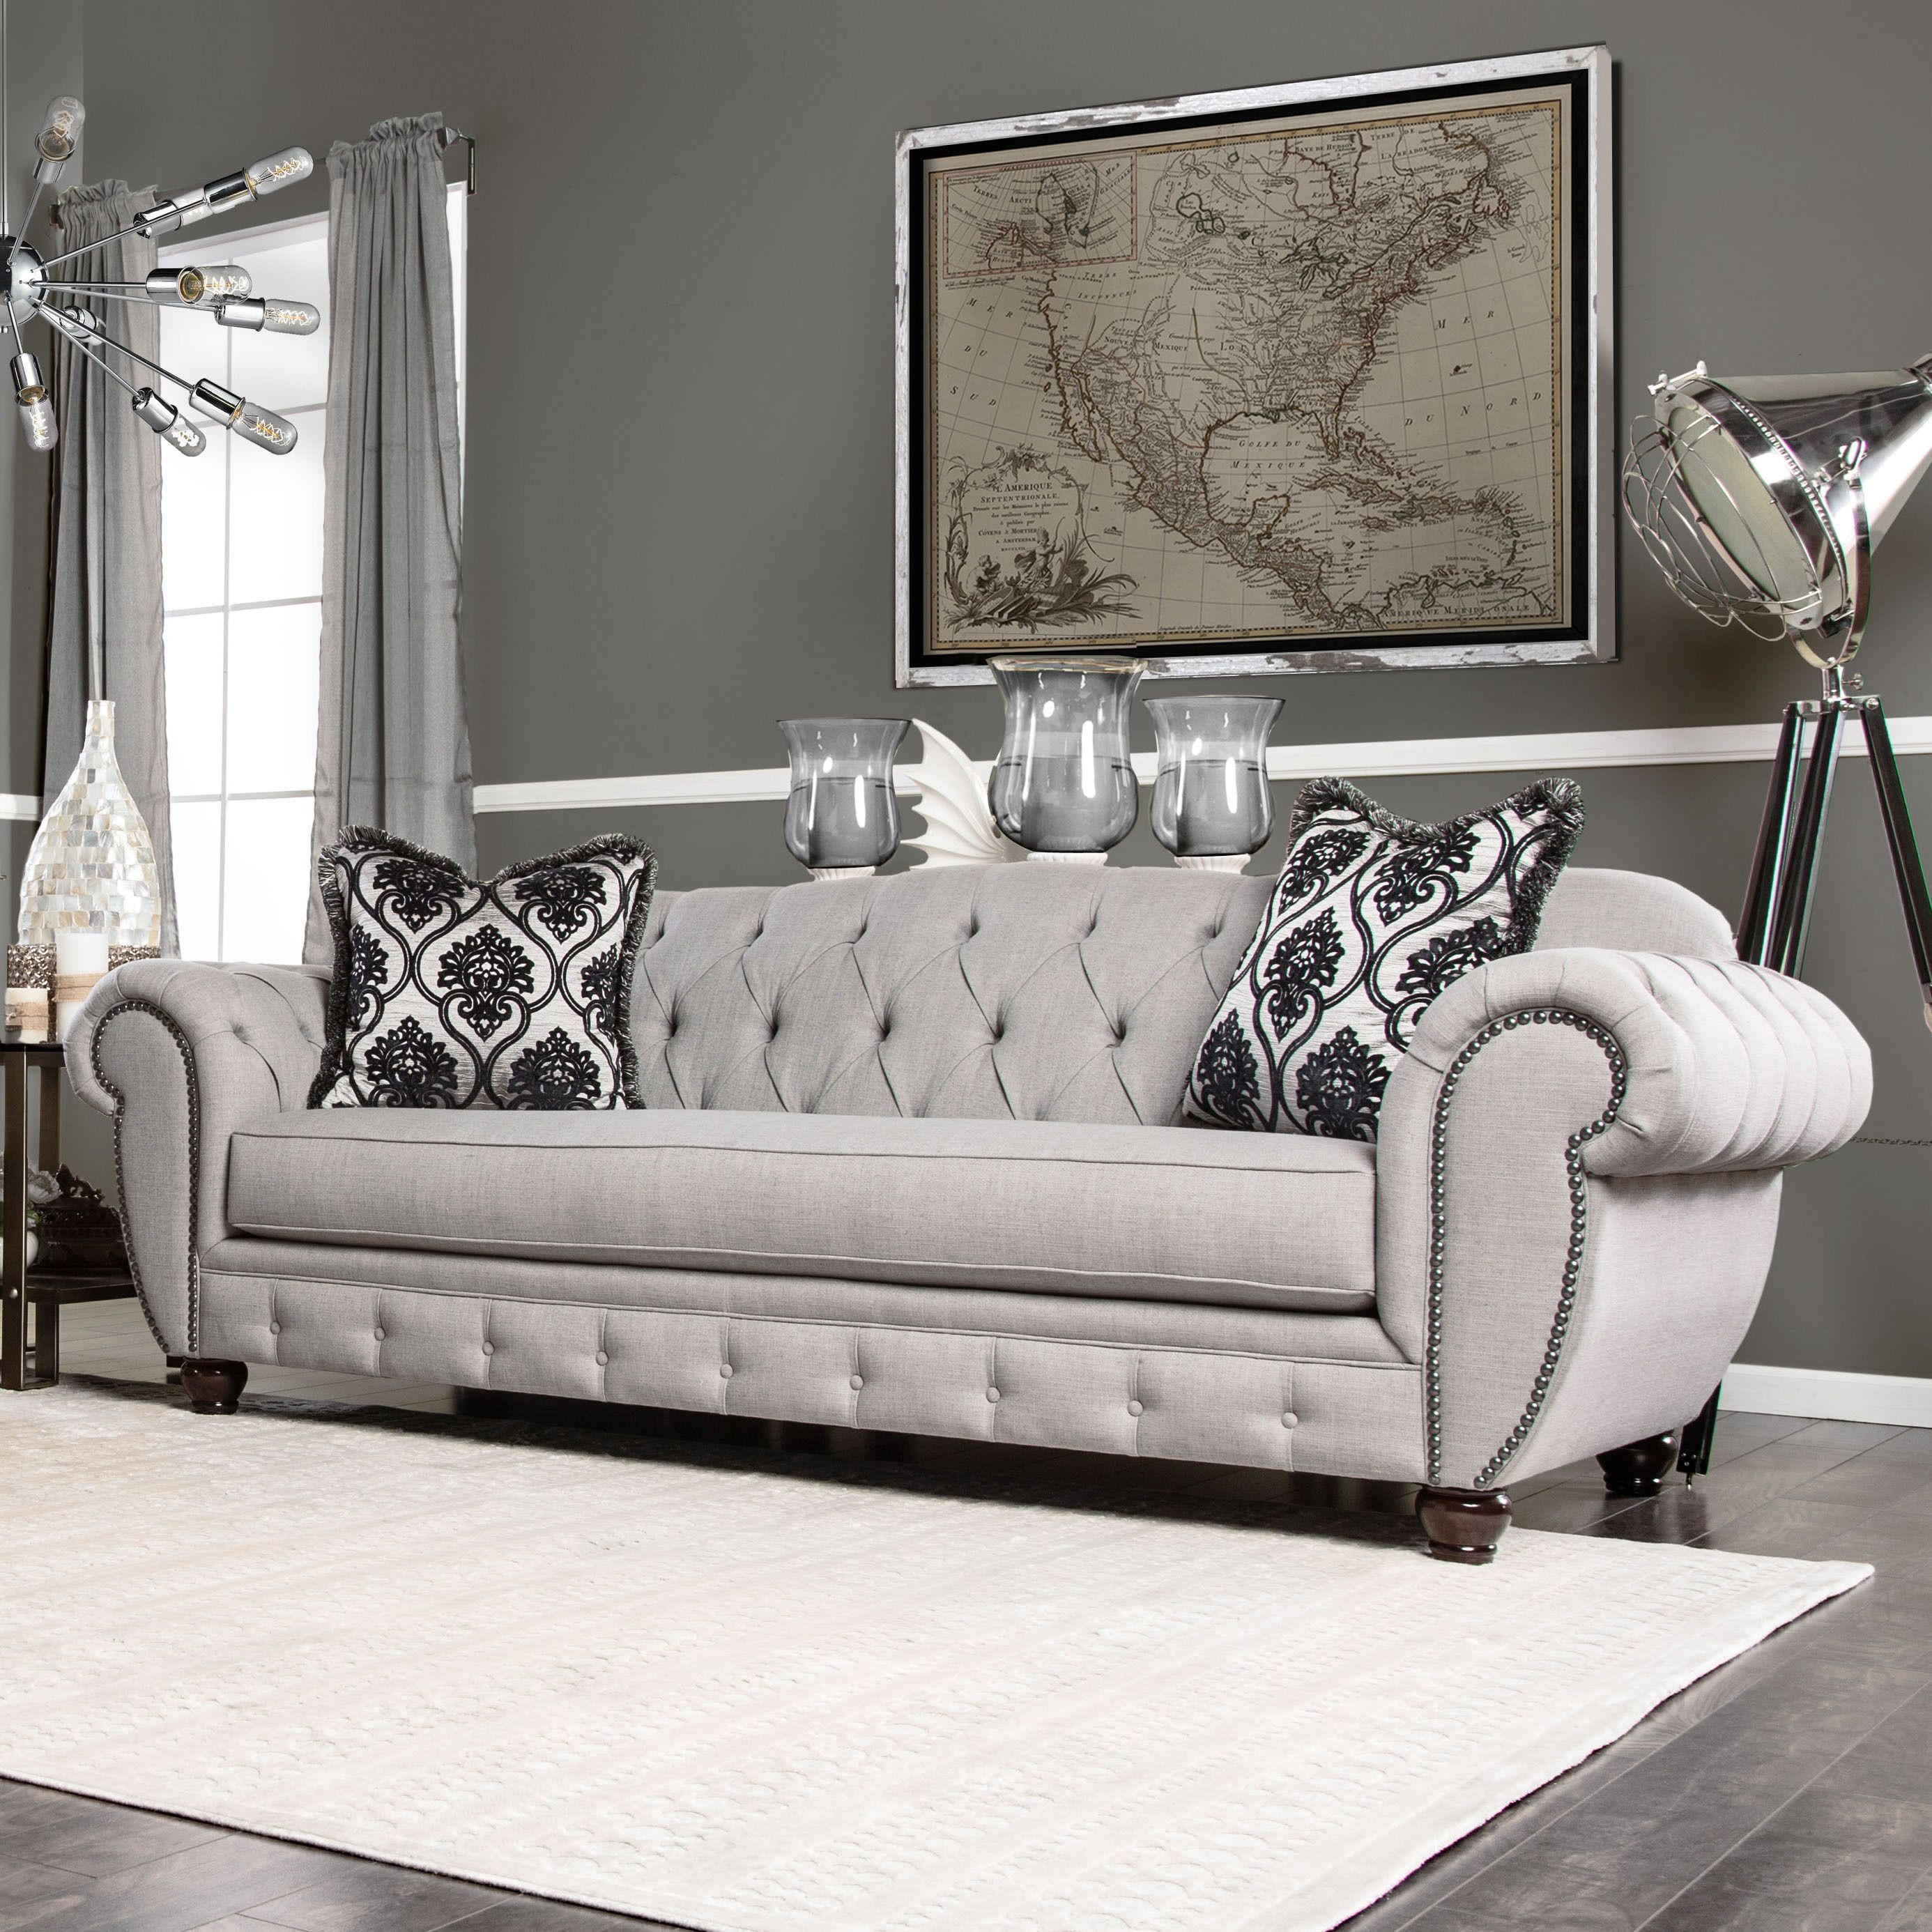 Furniture Of America Augusta Victorian Grey Sofa   Overstock Shopping   Great  Deals On Furniture Of